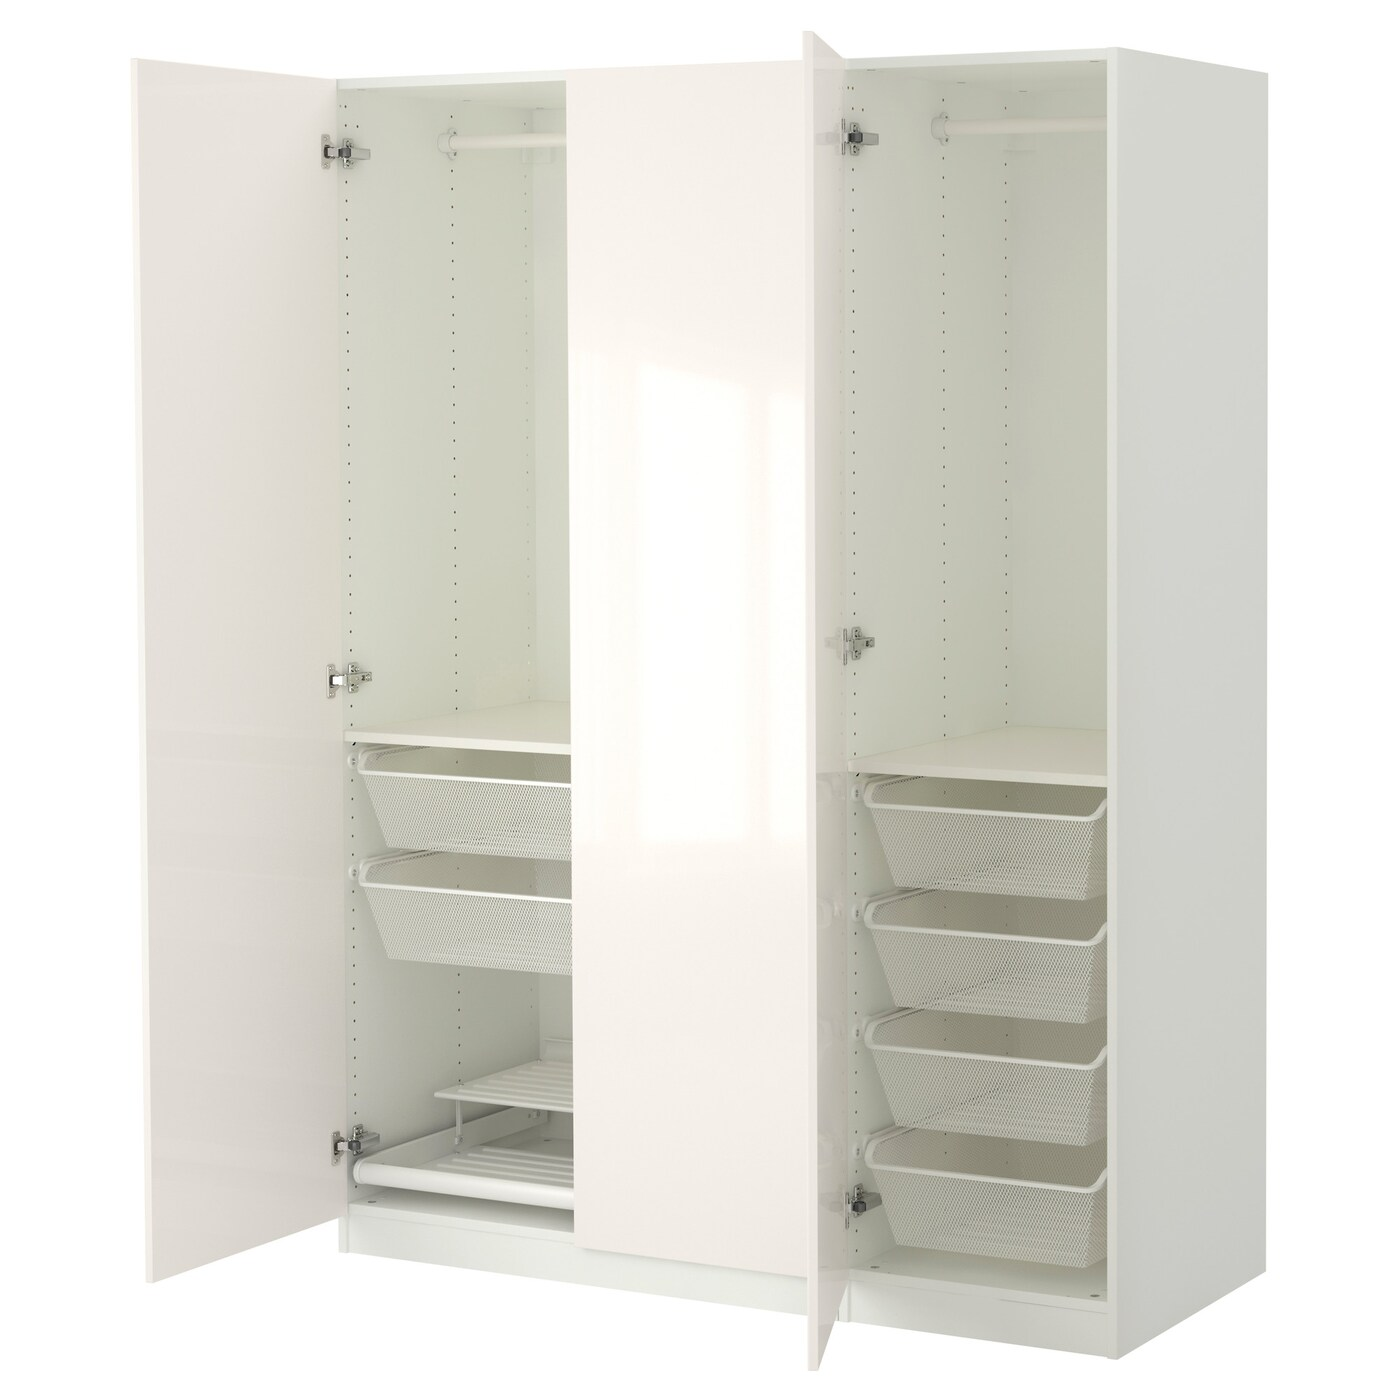 Soldes Ikea Toulouse Pax Wardrobe White Fardal High Gloss White 150 X 60 X 201